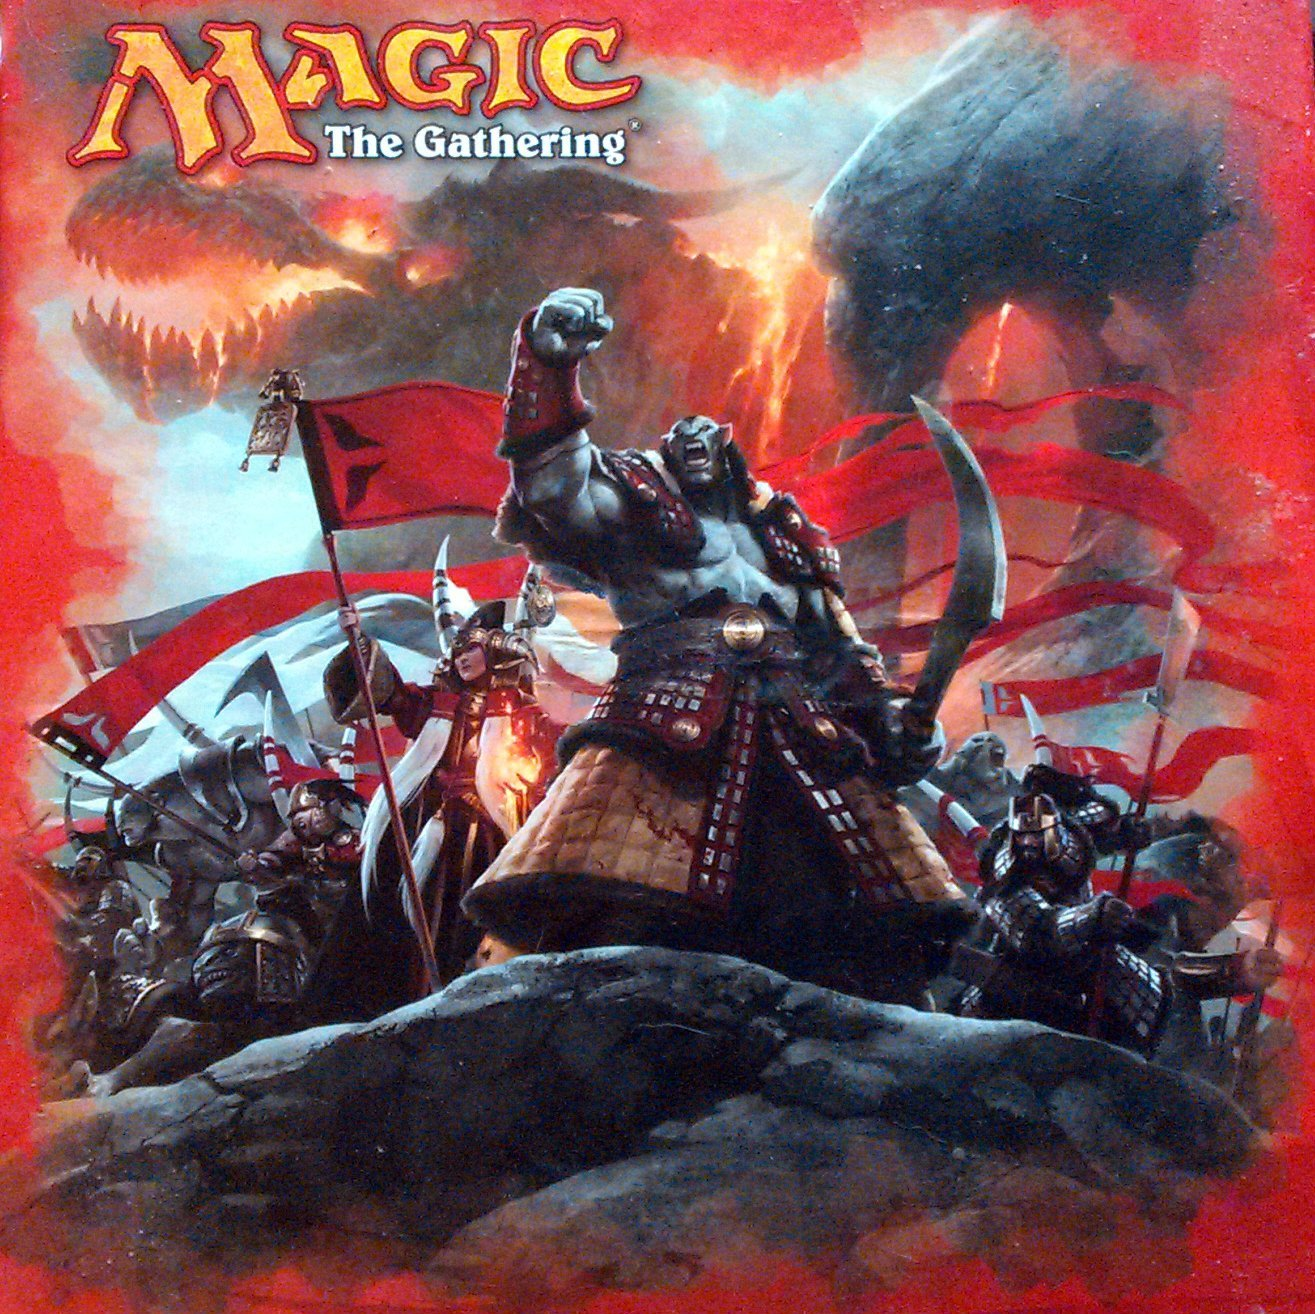 HUGE 1000+ Magic the Gathering Card Collection    Includes Foils, Rares, Uncommons & possible mythics  MTG Lot Bulk by Magic  the Gathering